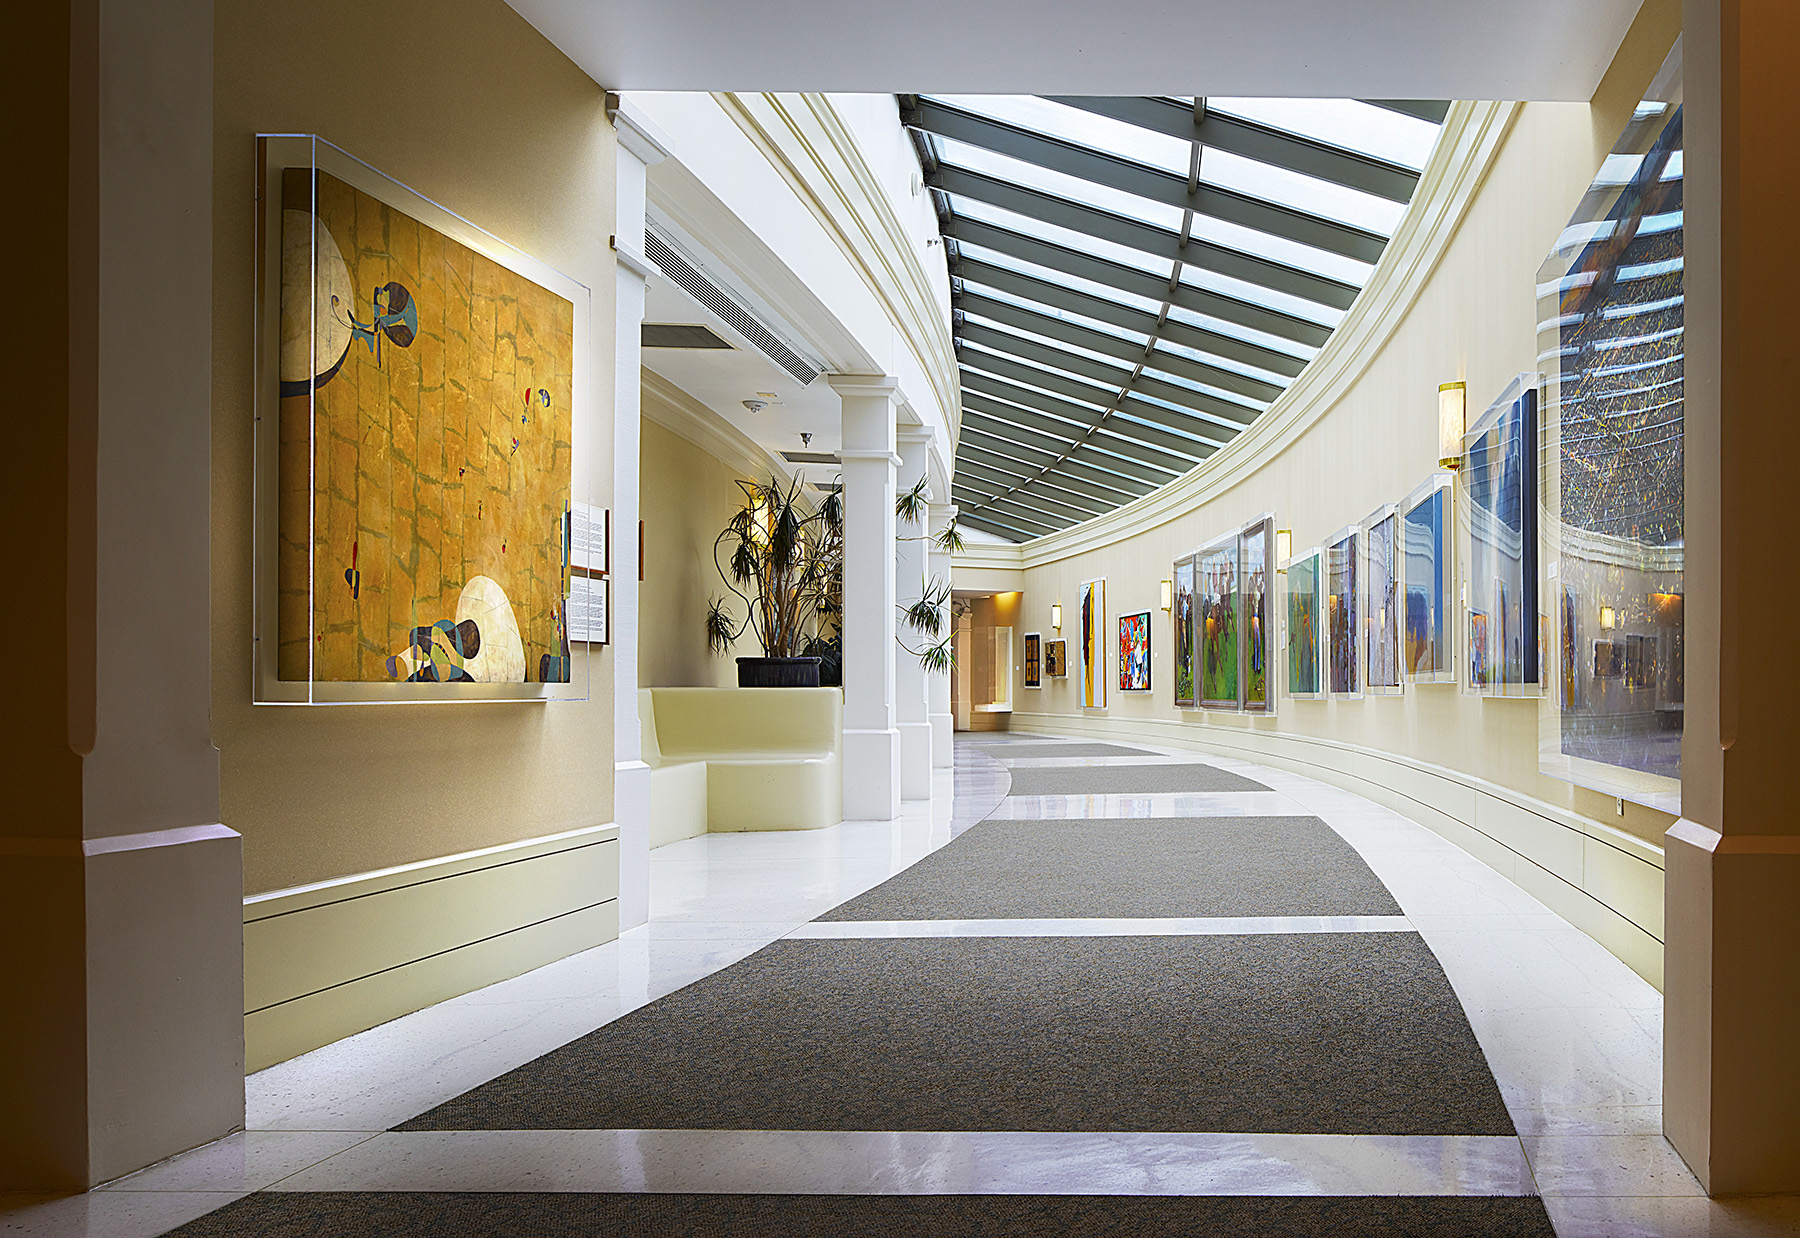 New Mexico Capitol Art Collection